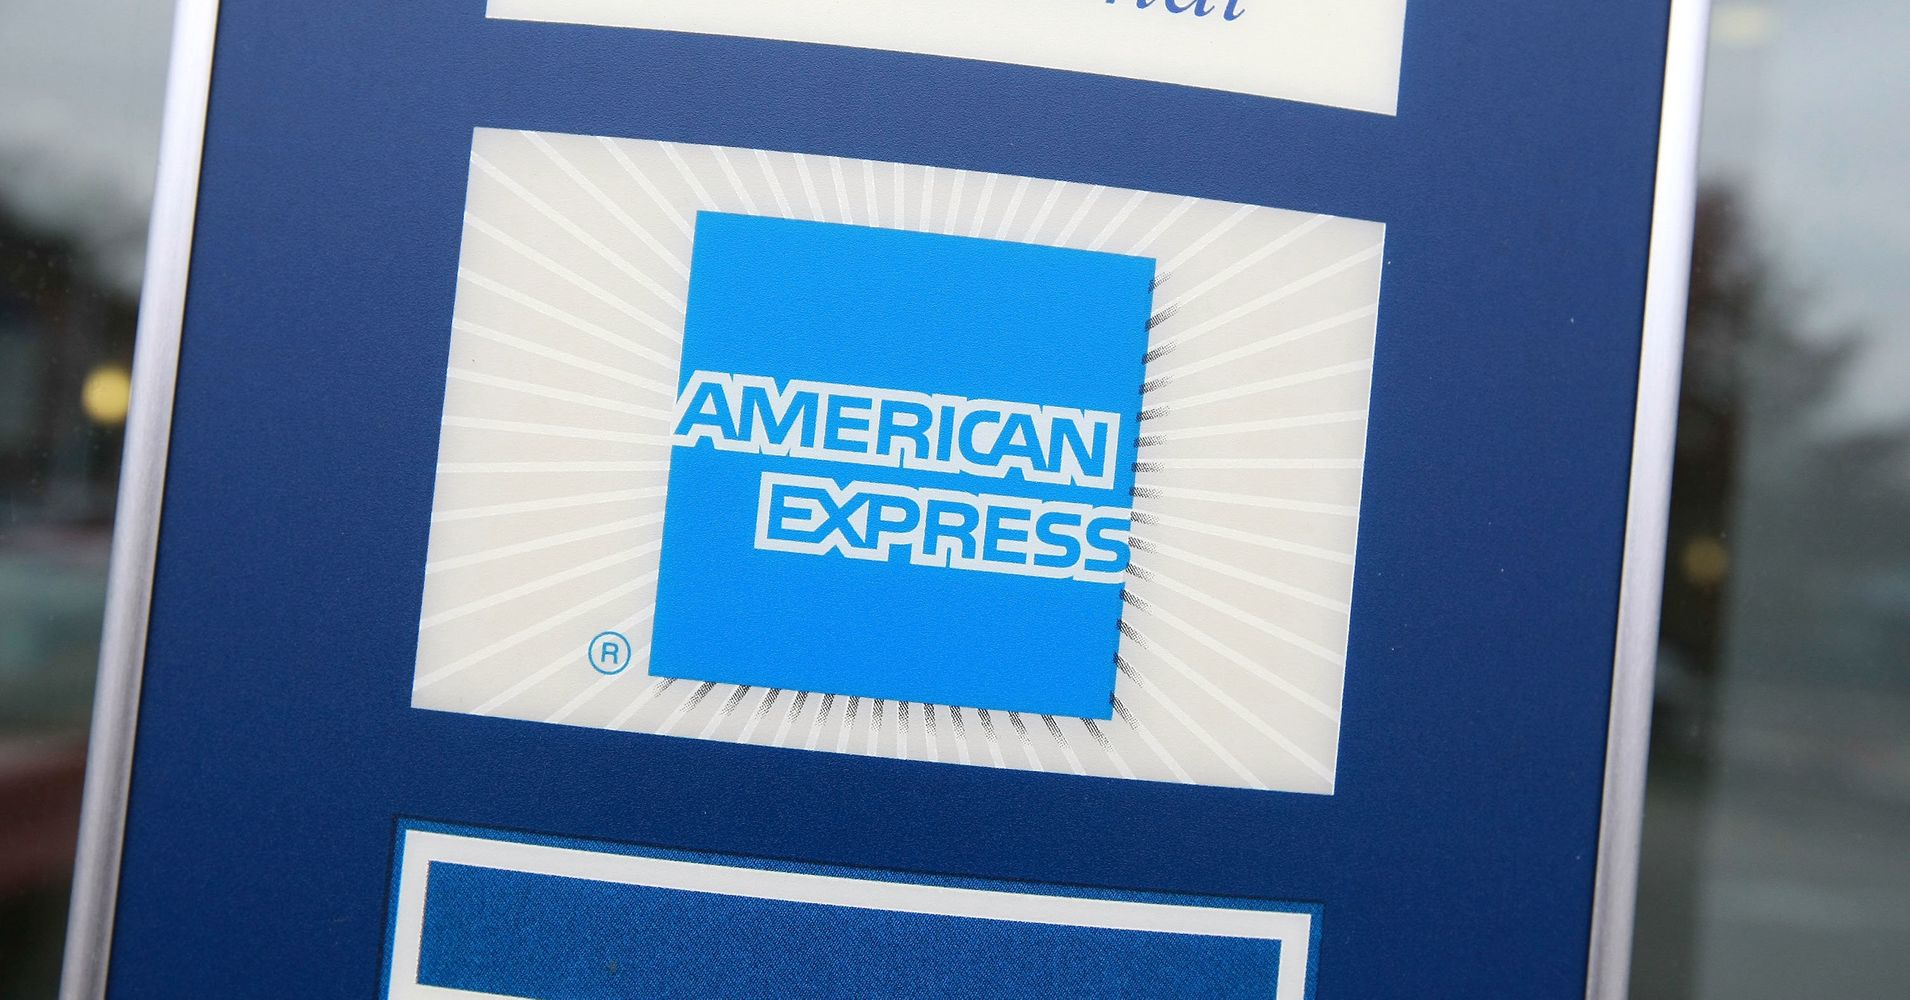 american express research paper Read this social issues research paper and over 88,000 other research documents american express a look into social marketing american express is a company with a lot of history that continues to excel in the global financial market.